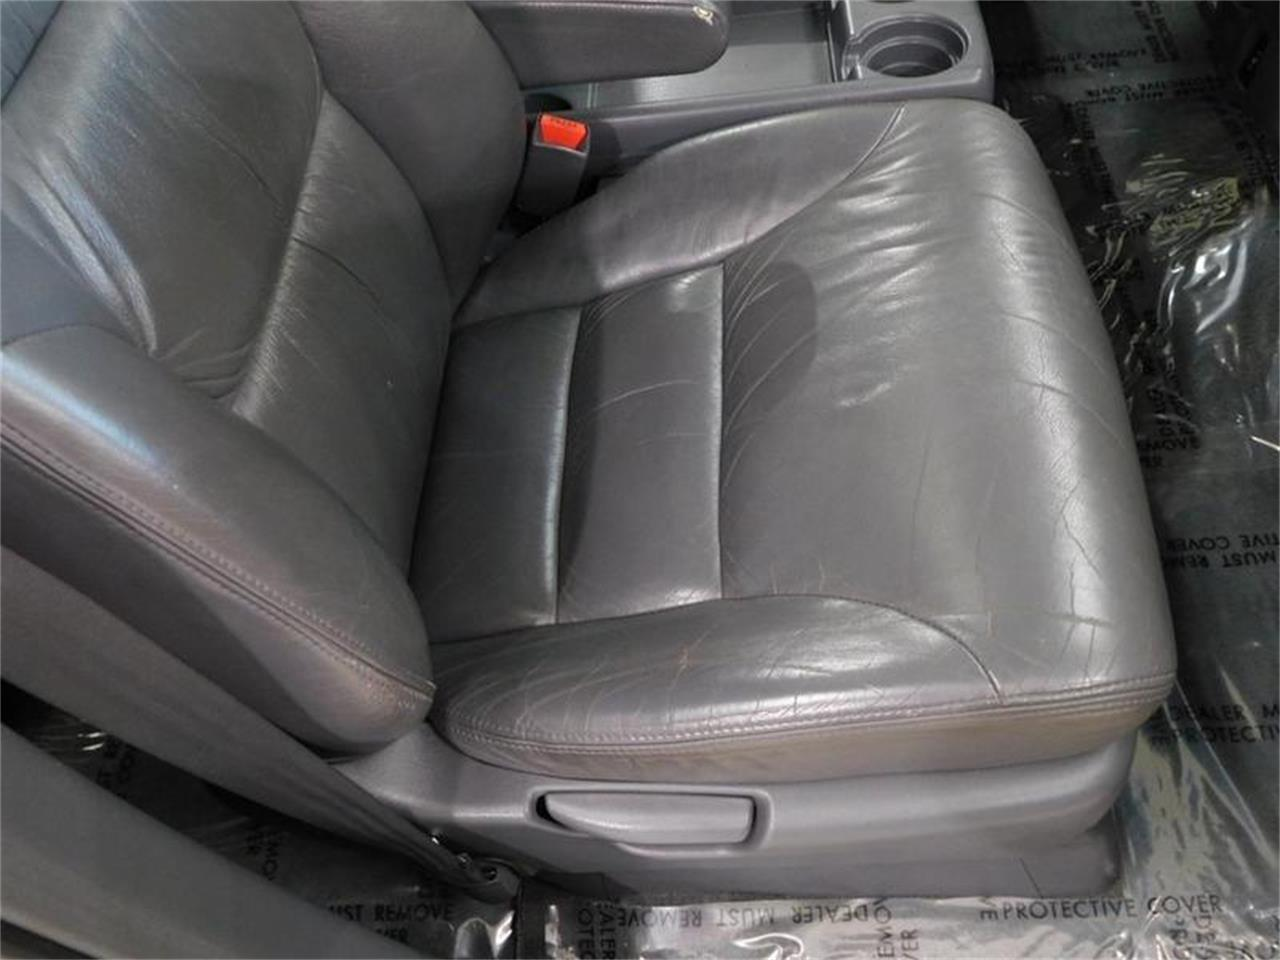 Large Picture of '06 Honda Odyssey - $6,580.00 Offered by Superior Auto Sales - QPN6